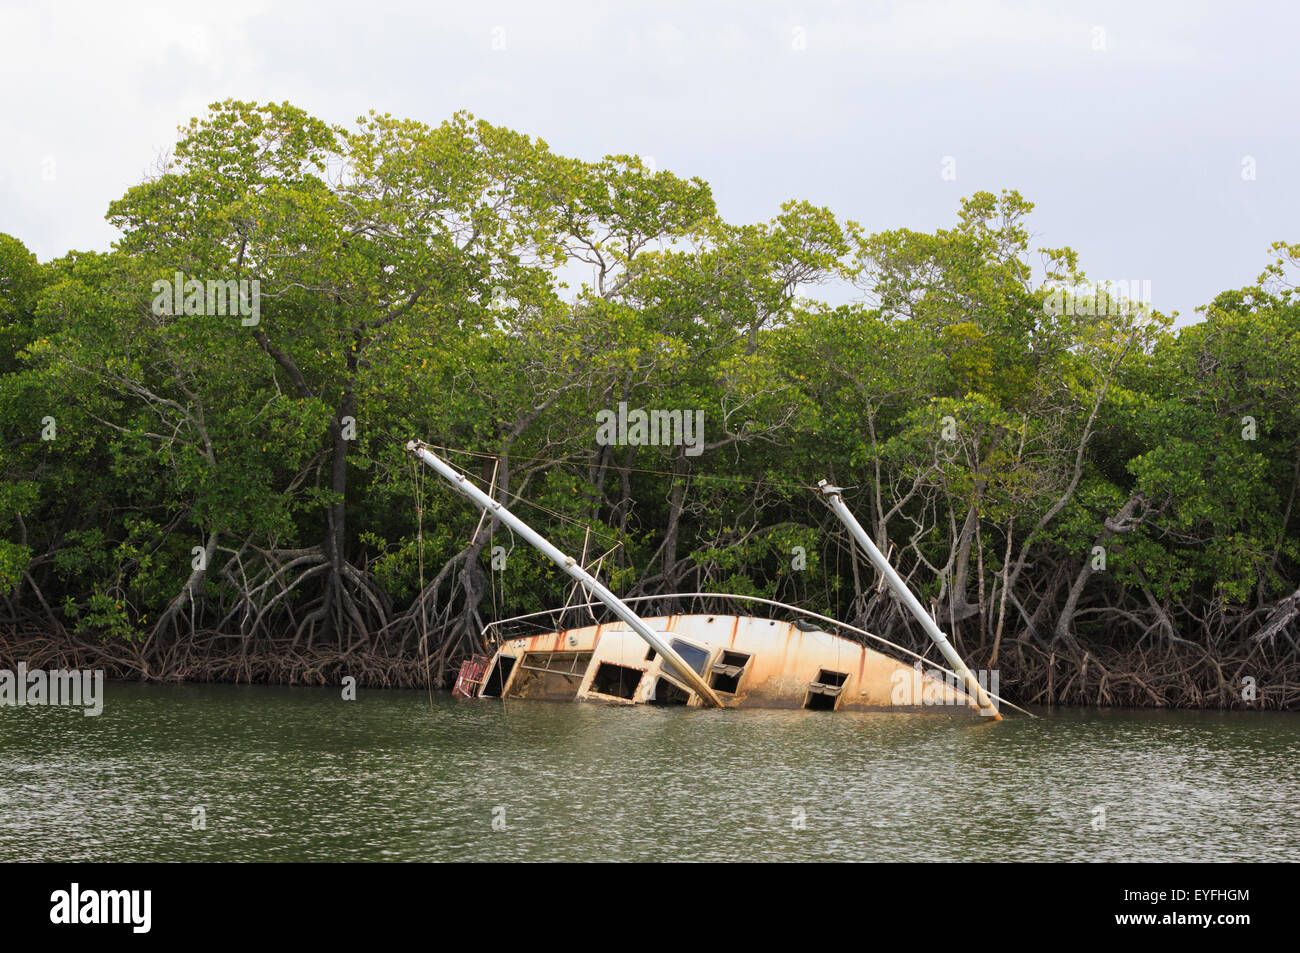 An abandoned and upturned yacht in Dickson Inlet, Port Douglas, damaged by Severe Tropical Cyclone Yasi in 2011 - Stock Image